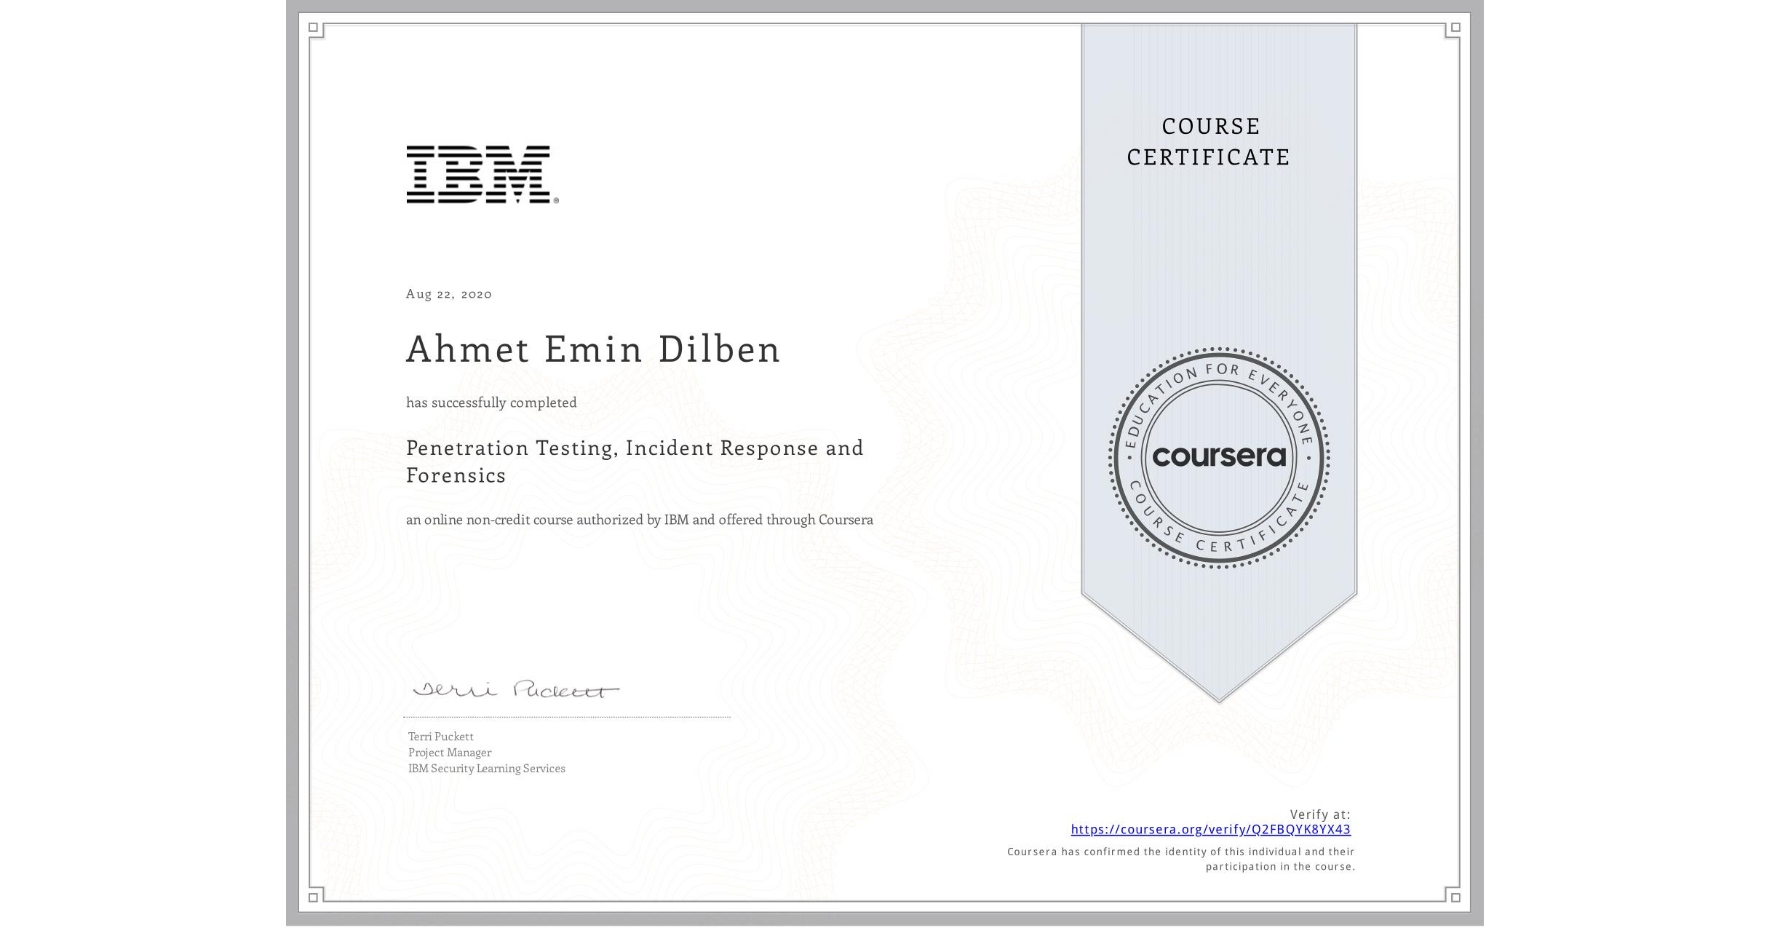 View certificate for Ahmet Emin Dilben, Penetration Testing, Incident Response and Forensics, an online non-credit course authorized by IBM and offered through Coursera